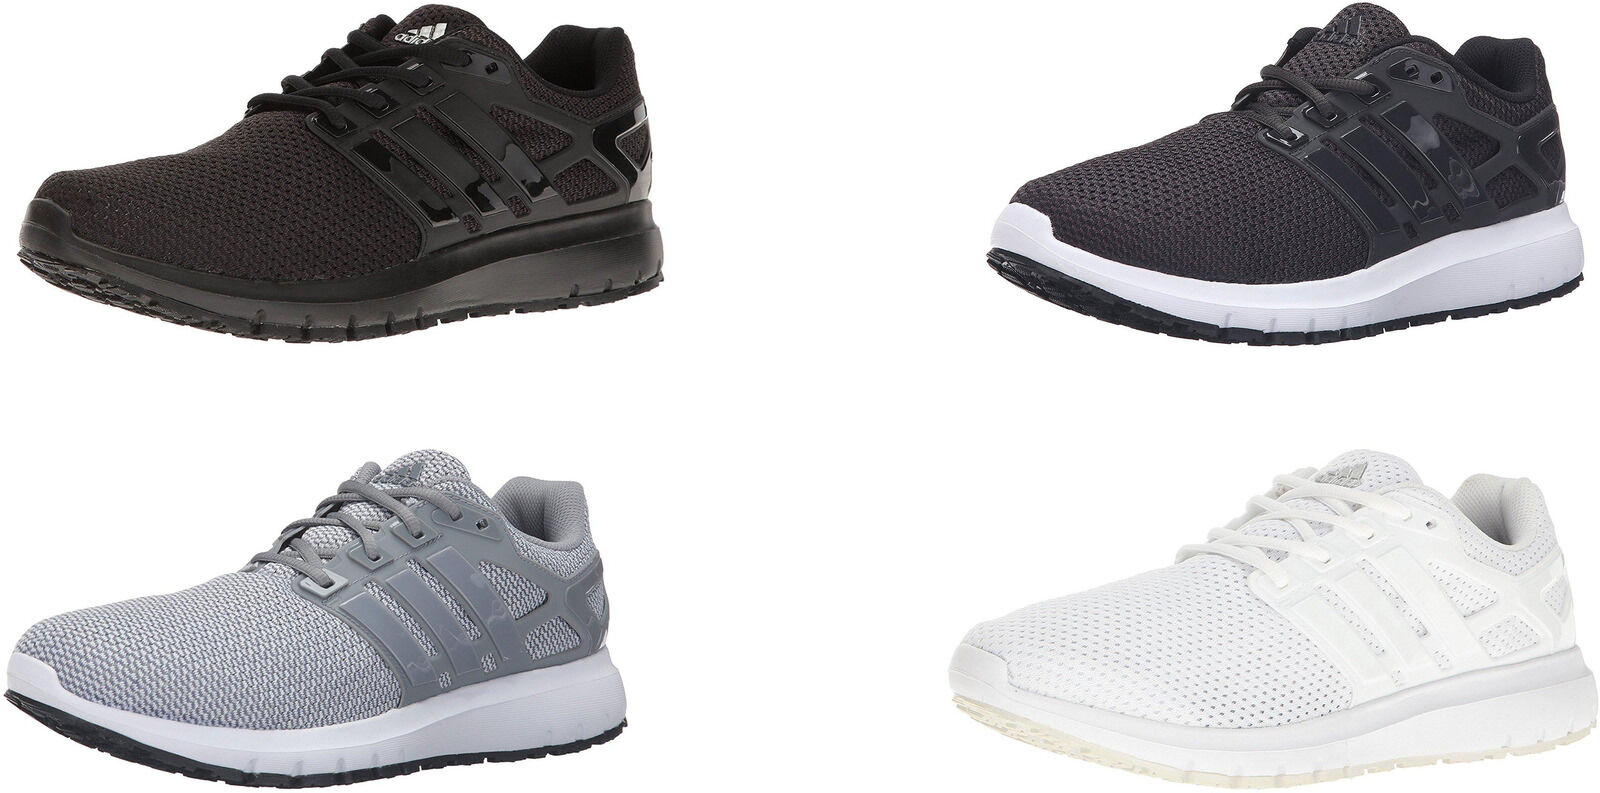 adidas Men's Energy Cloud Running Shoes, 4 Colors